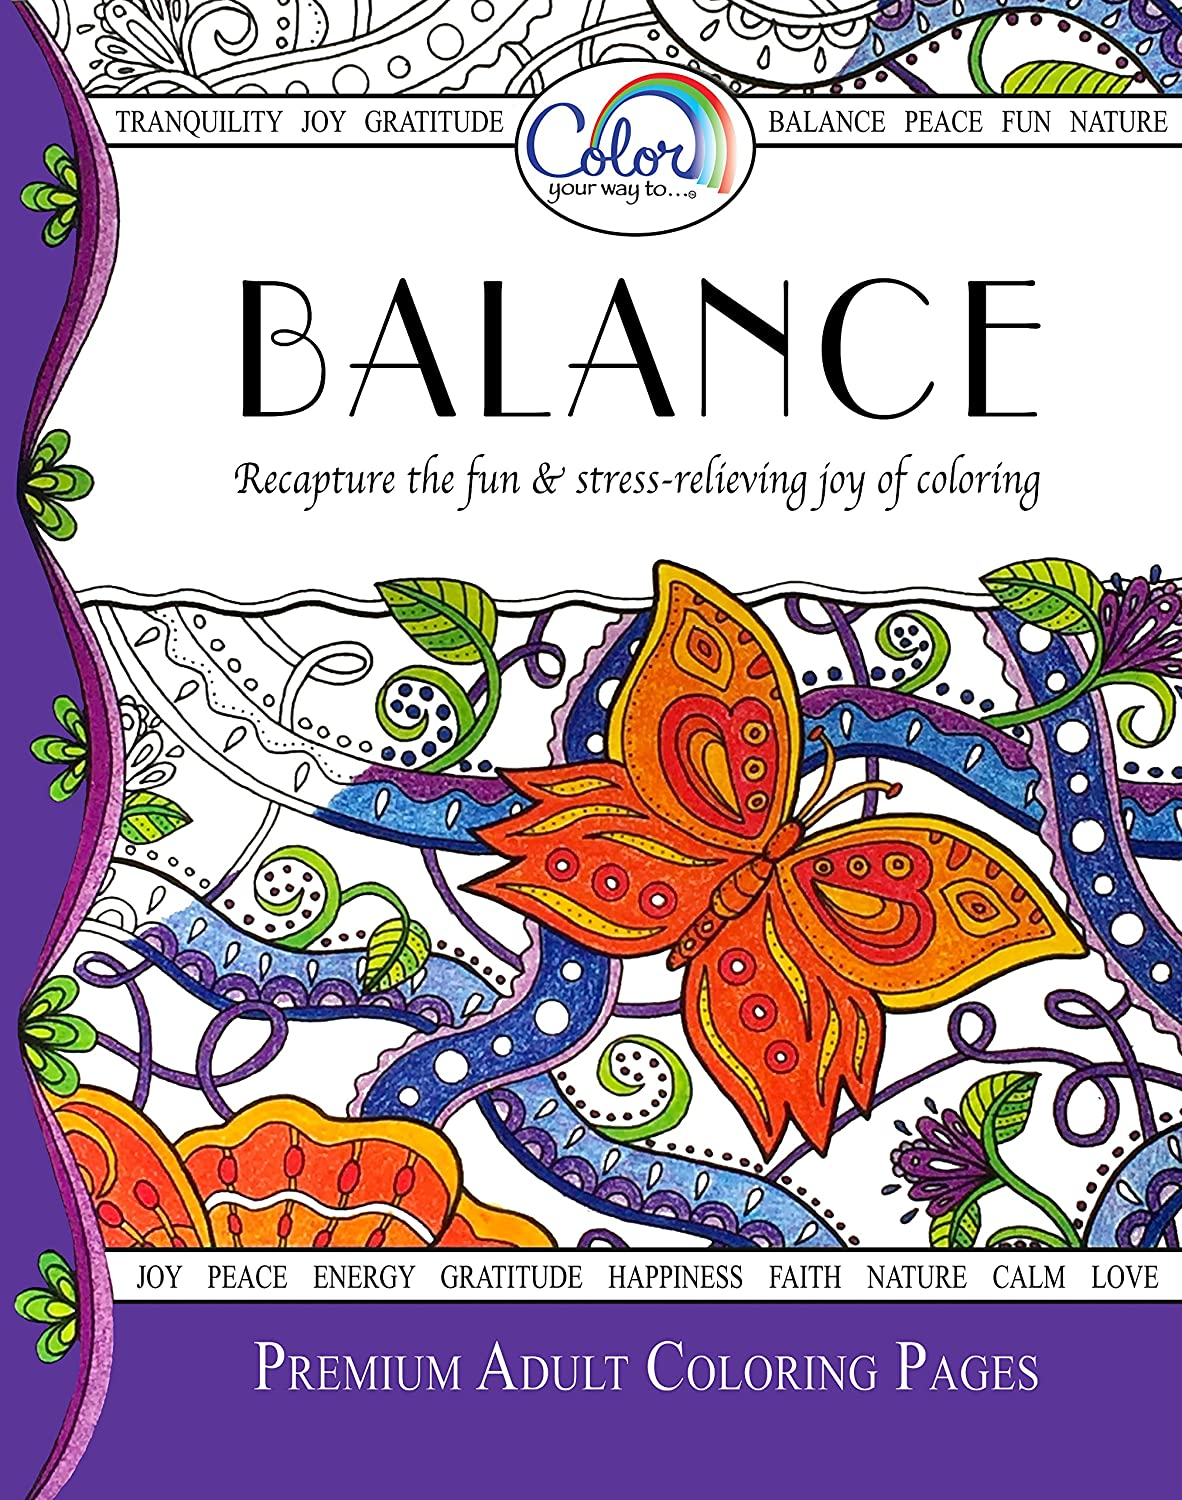 Coloring pages for adults laptop app - Amazon Com Adult Coloring Book Color Your Way To Balance Premium Adult Coloring Pages For Watercolor Markers Colored Pencils Made In The Usa Arts